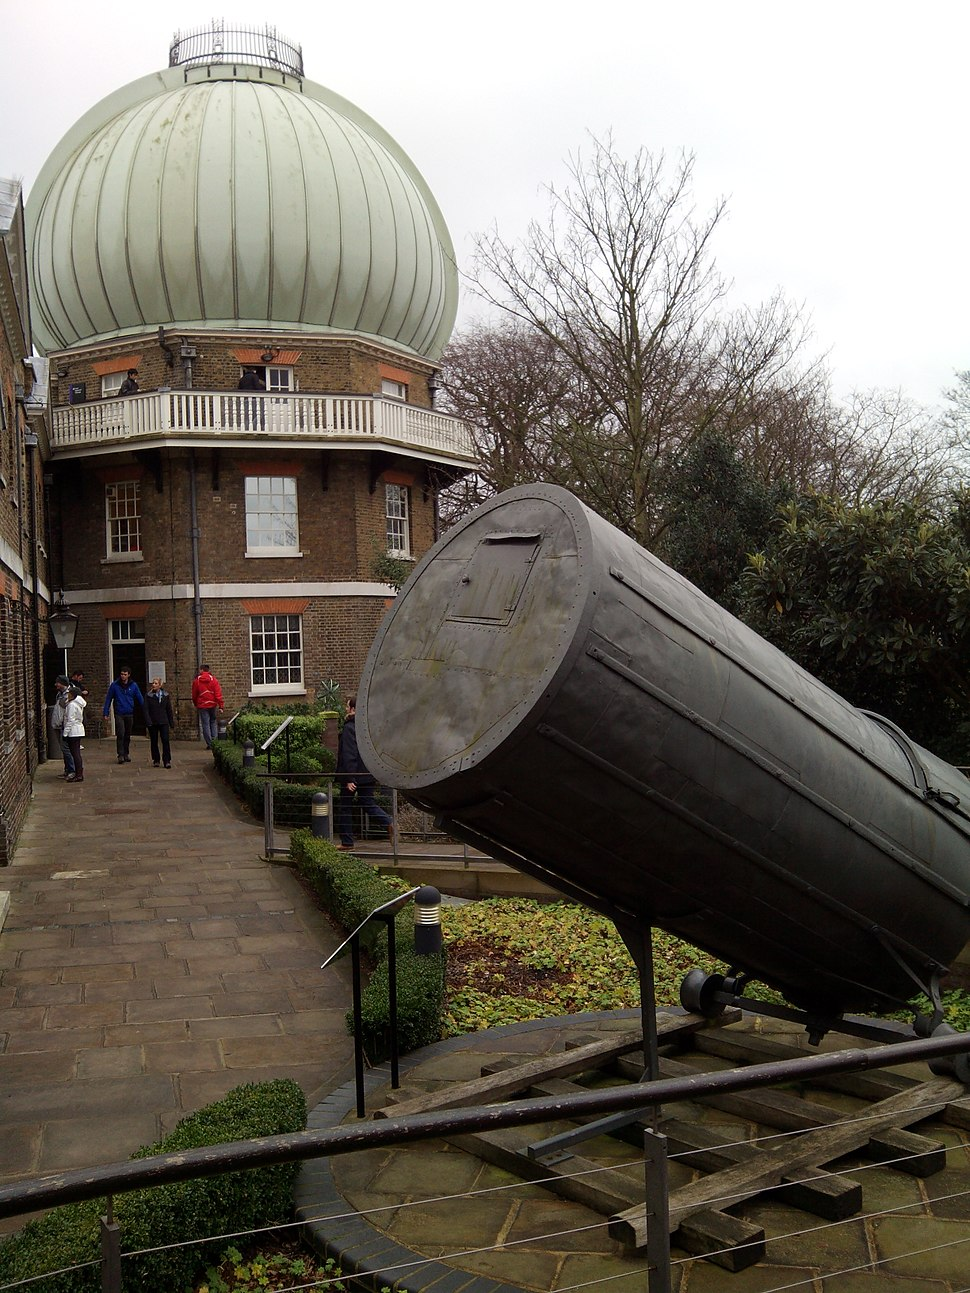 28-inch telescope and 40-foot telescope, Royal Observatory, Greenwich, London, UK, 2015